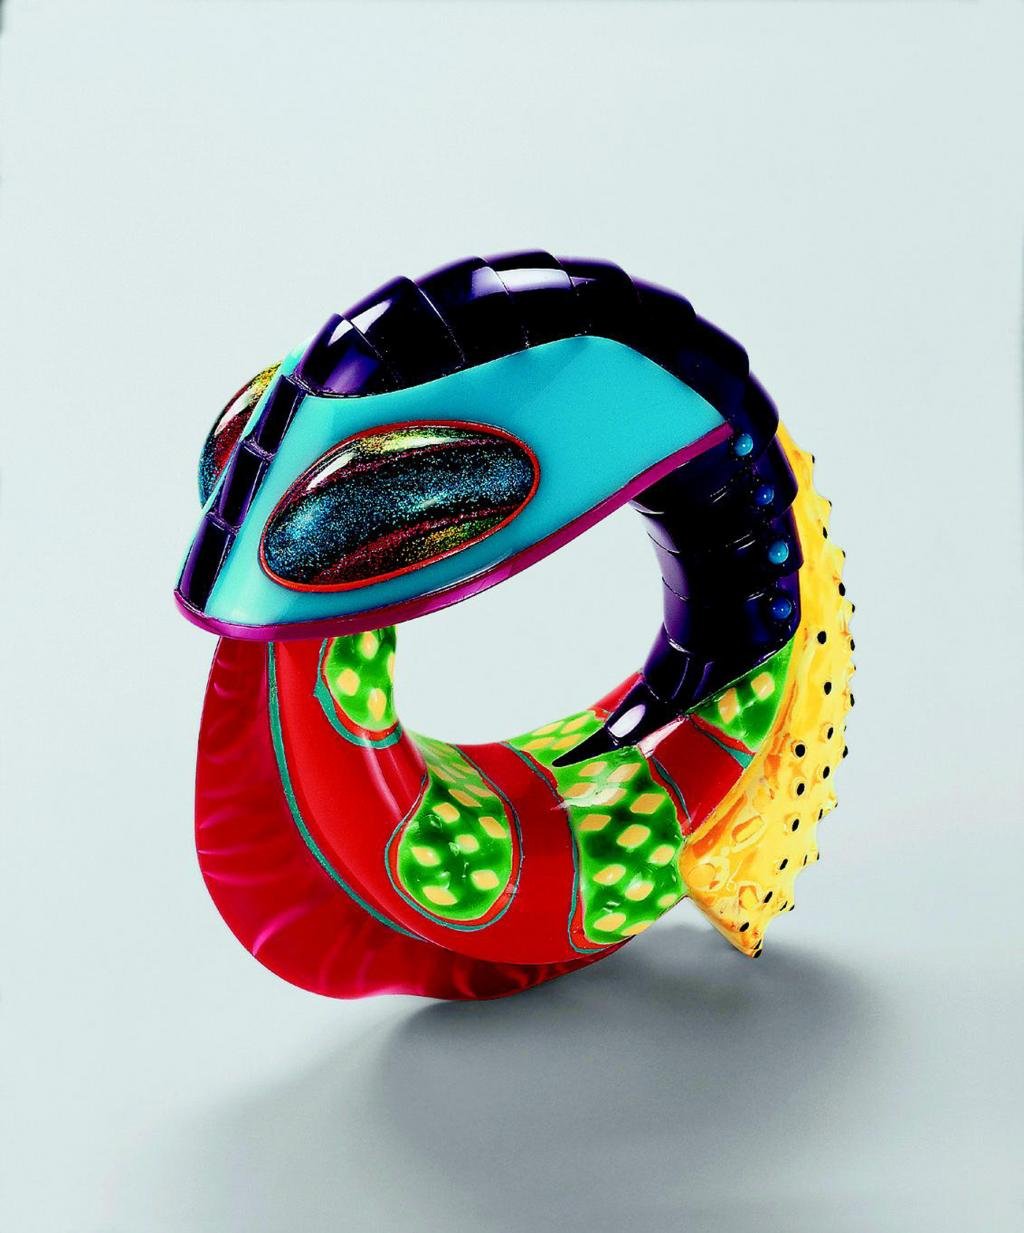 Bangle | Acrylic, polyester | Peter Chang, Glasgow, 1998 | (c) SMP, Phot Rüdiger Flöter